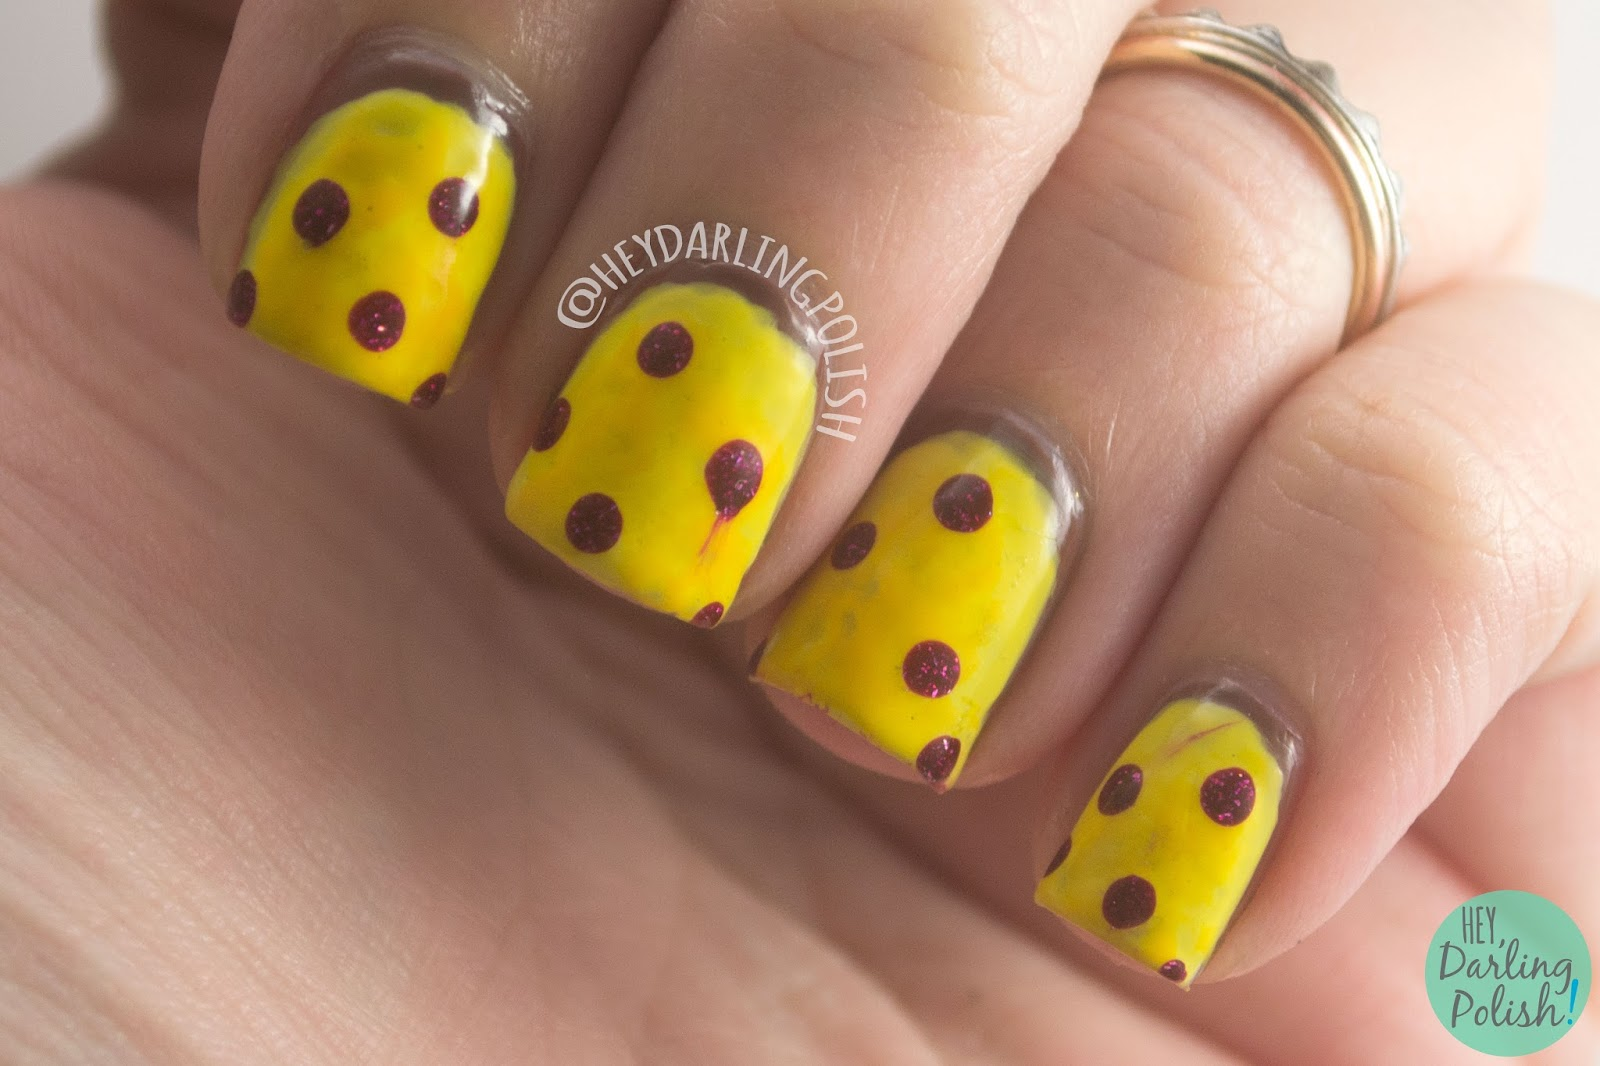 nails, nail art, nail polish, yellow, red, pepperoni, pizza, pepperoni pizza, hey darling polish, lacquer legion, llyummy